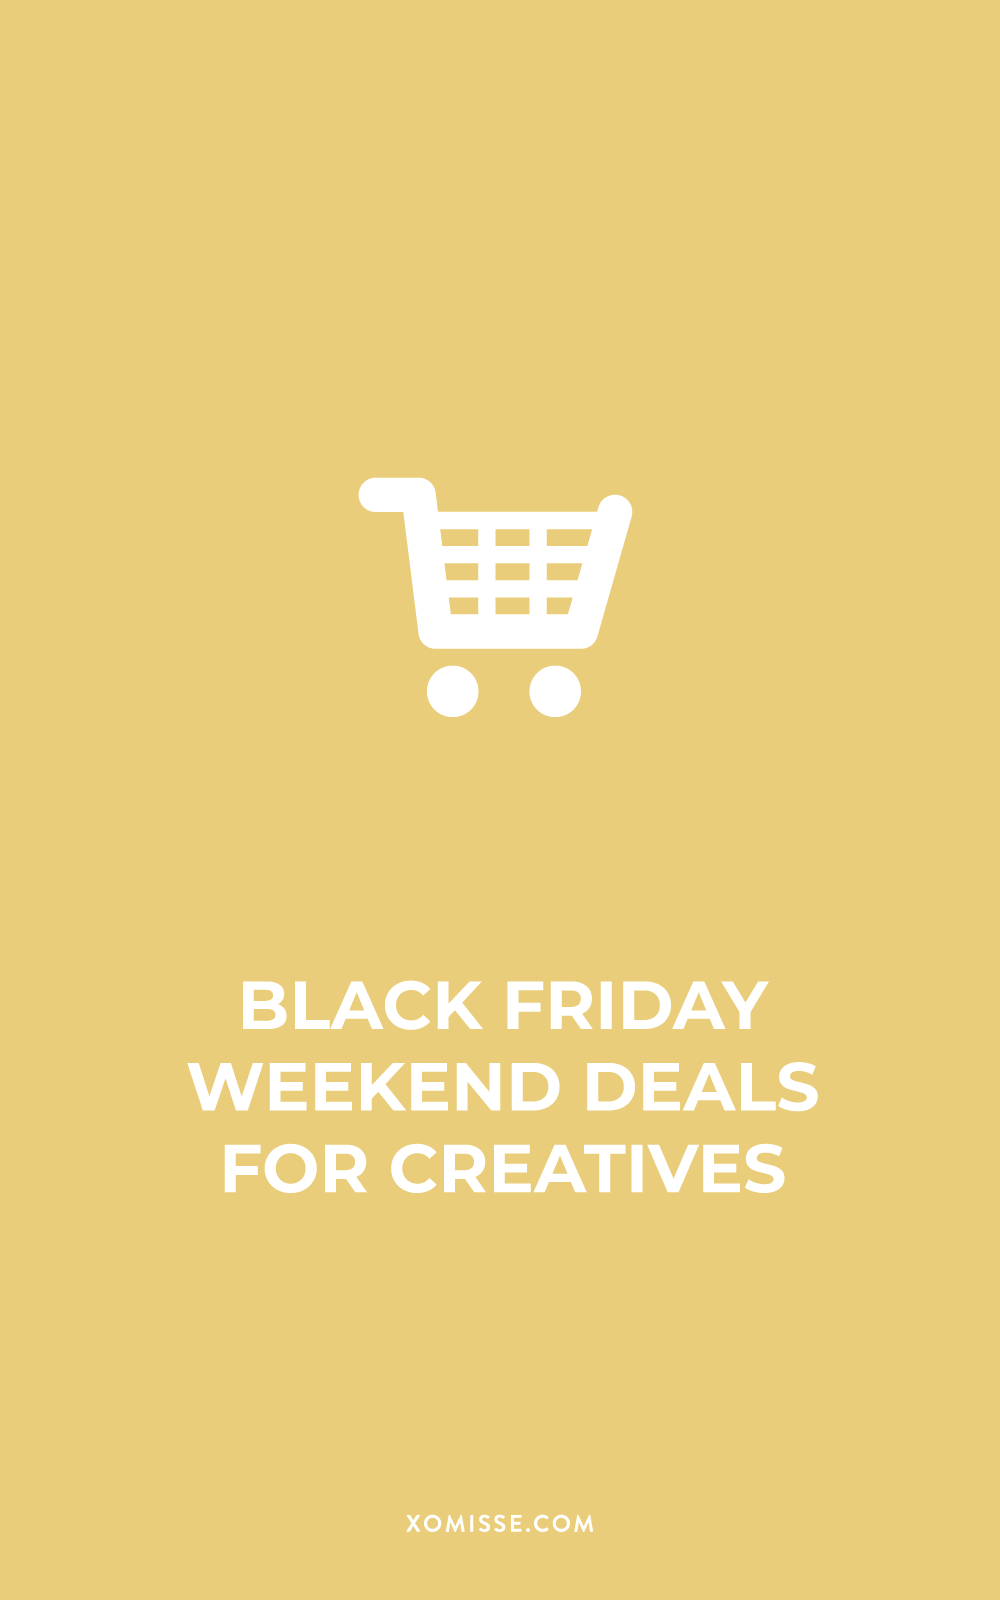 Black Friday Cyber Monday 2020 deals for bloggers, content creators, designers, developers and WordPress users